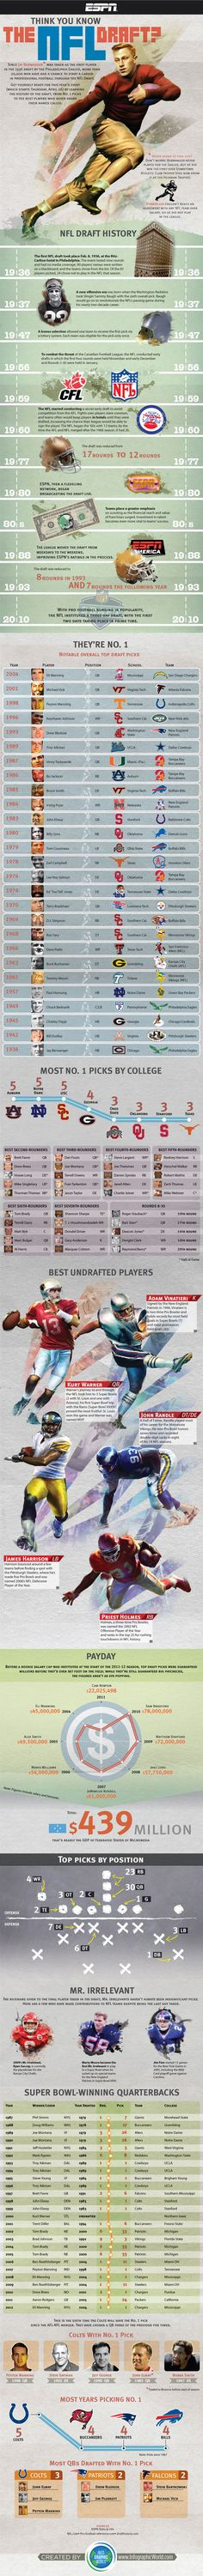 The Ultimate NFL Draft Infographic